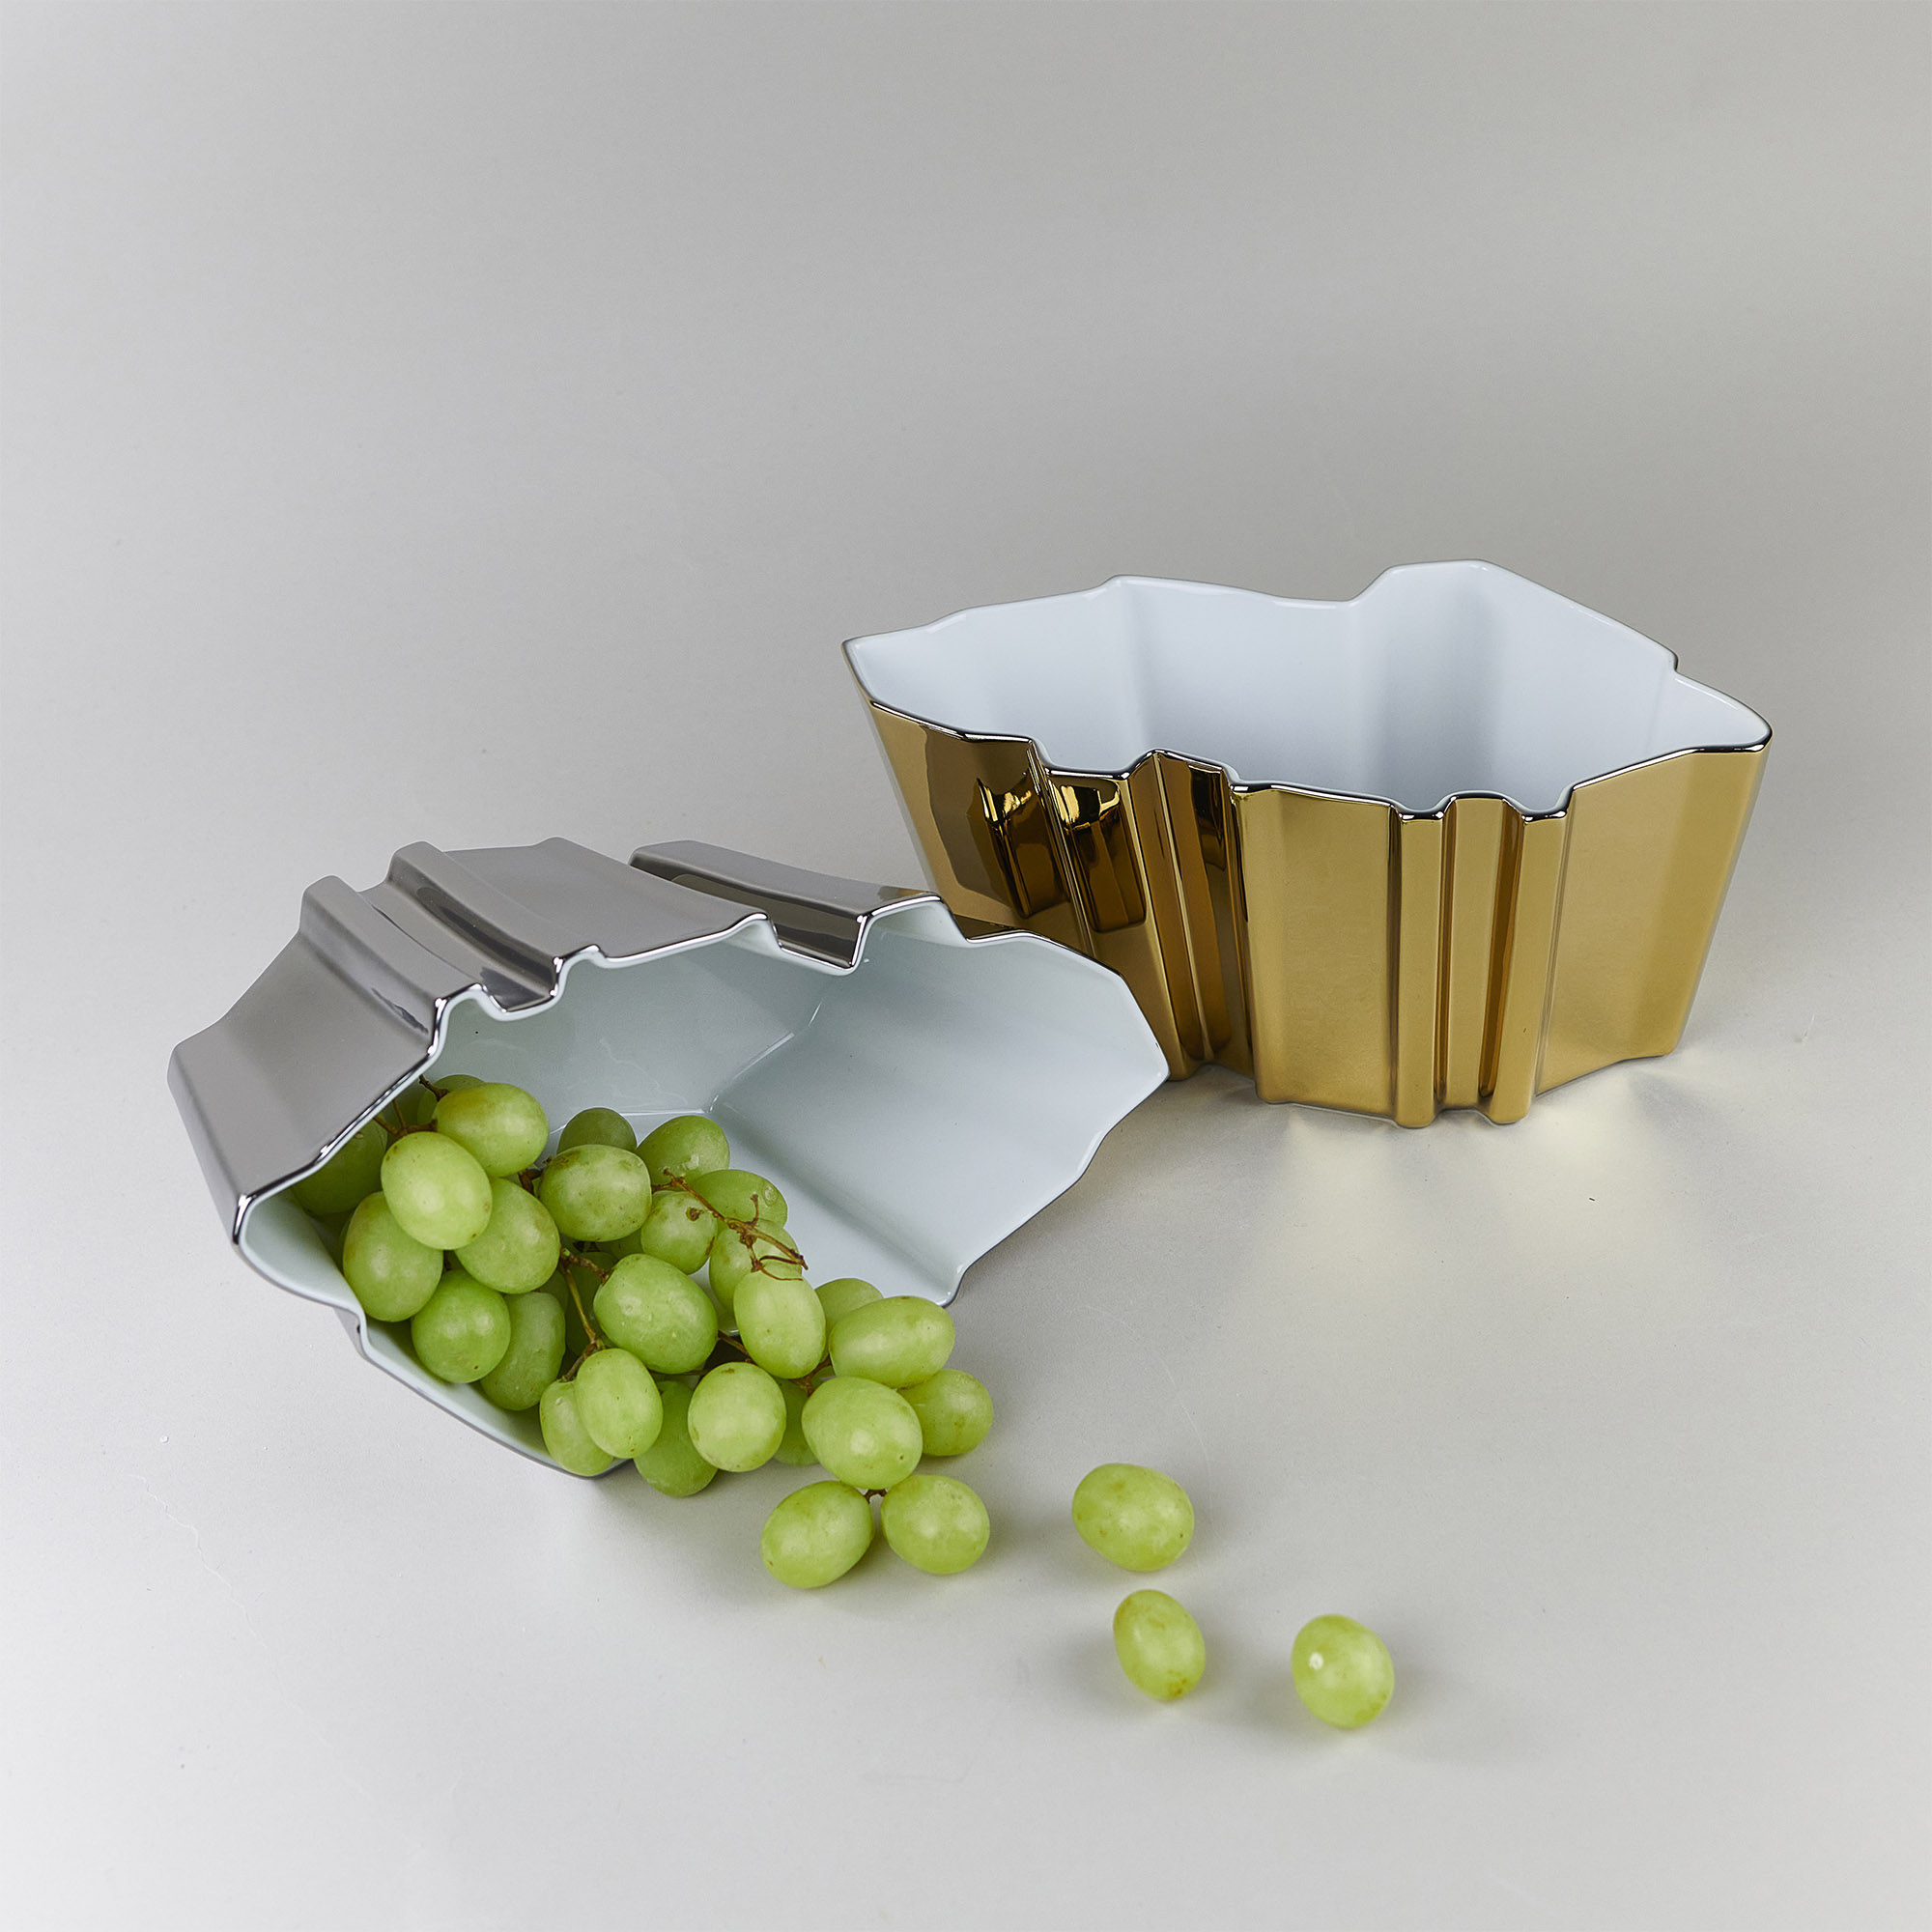 Silver and gold porcelain bowls with grapes by Qubus design studio